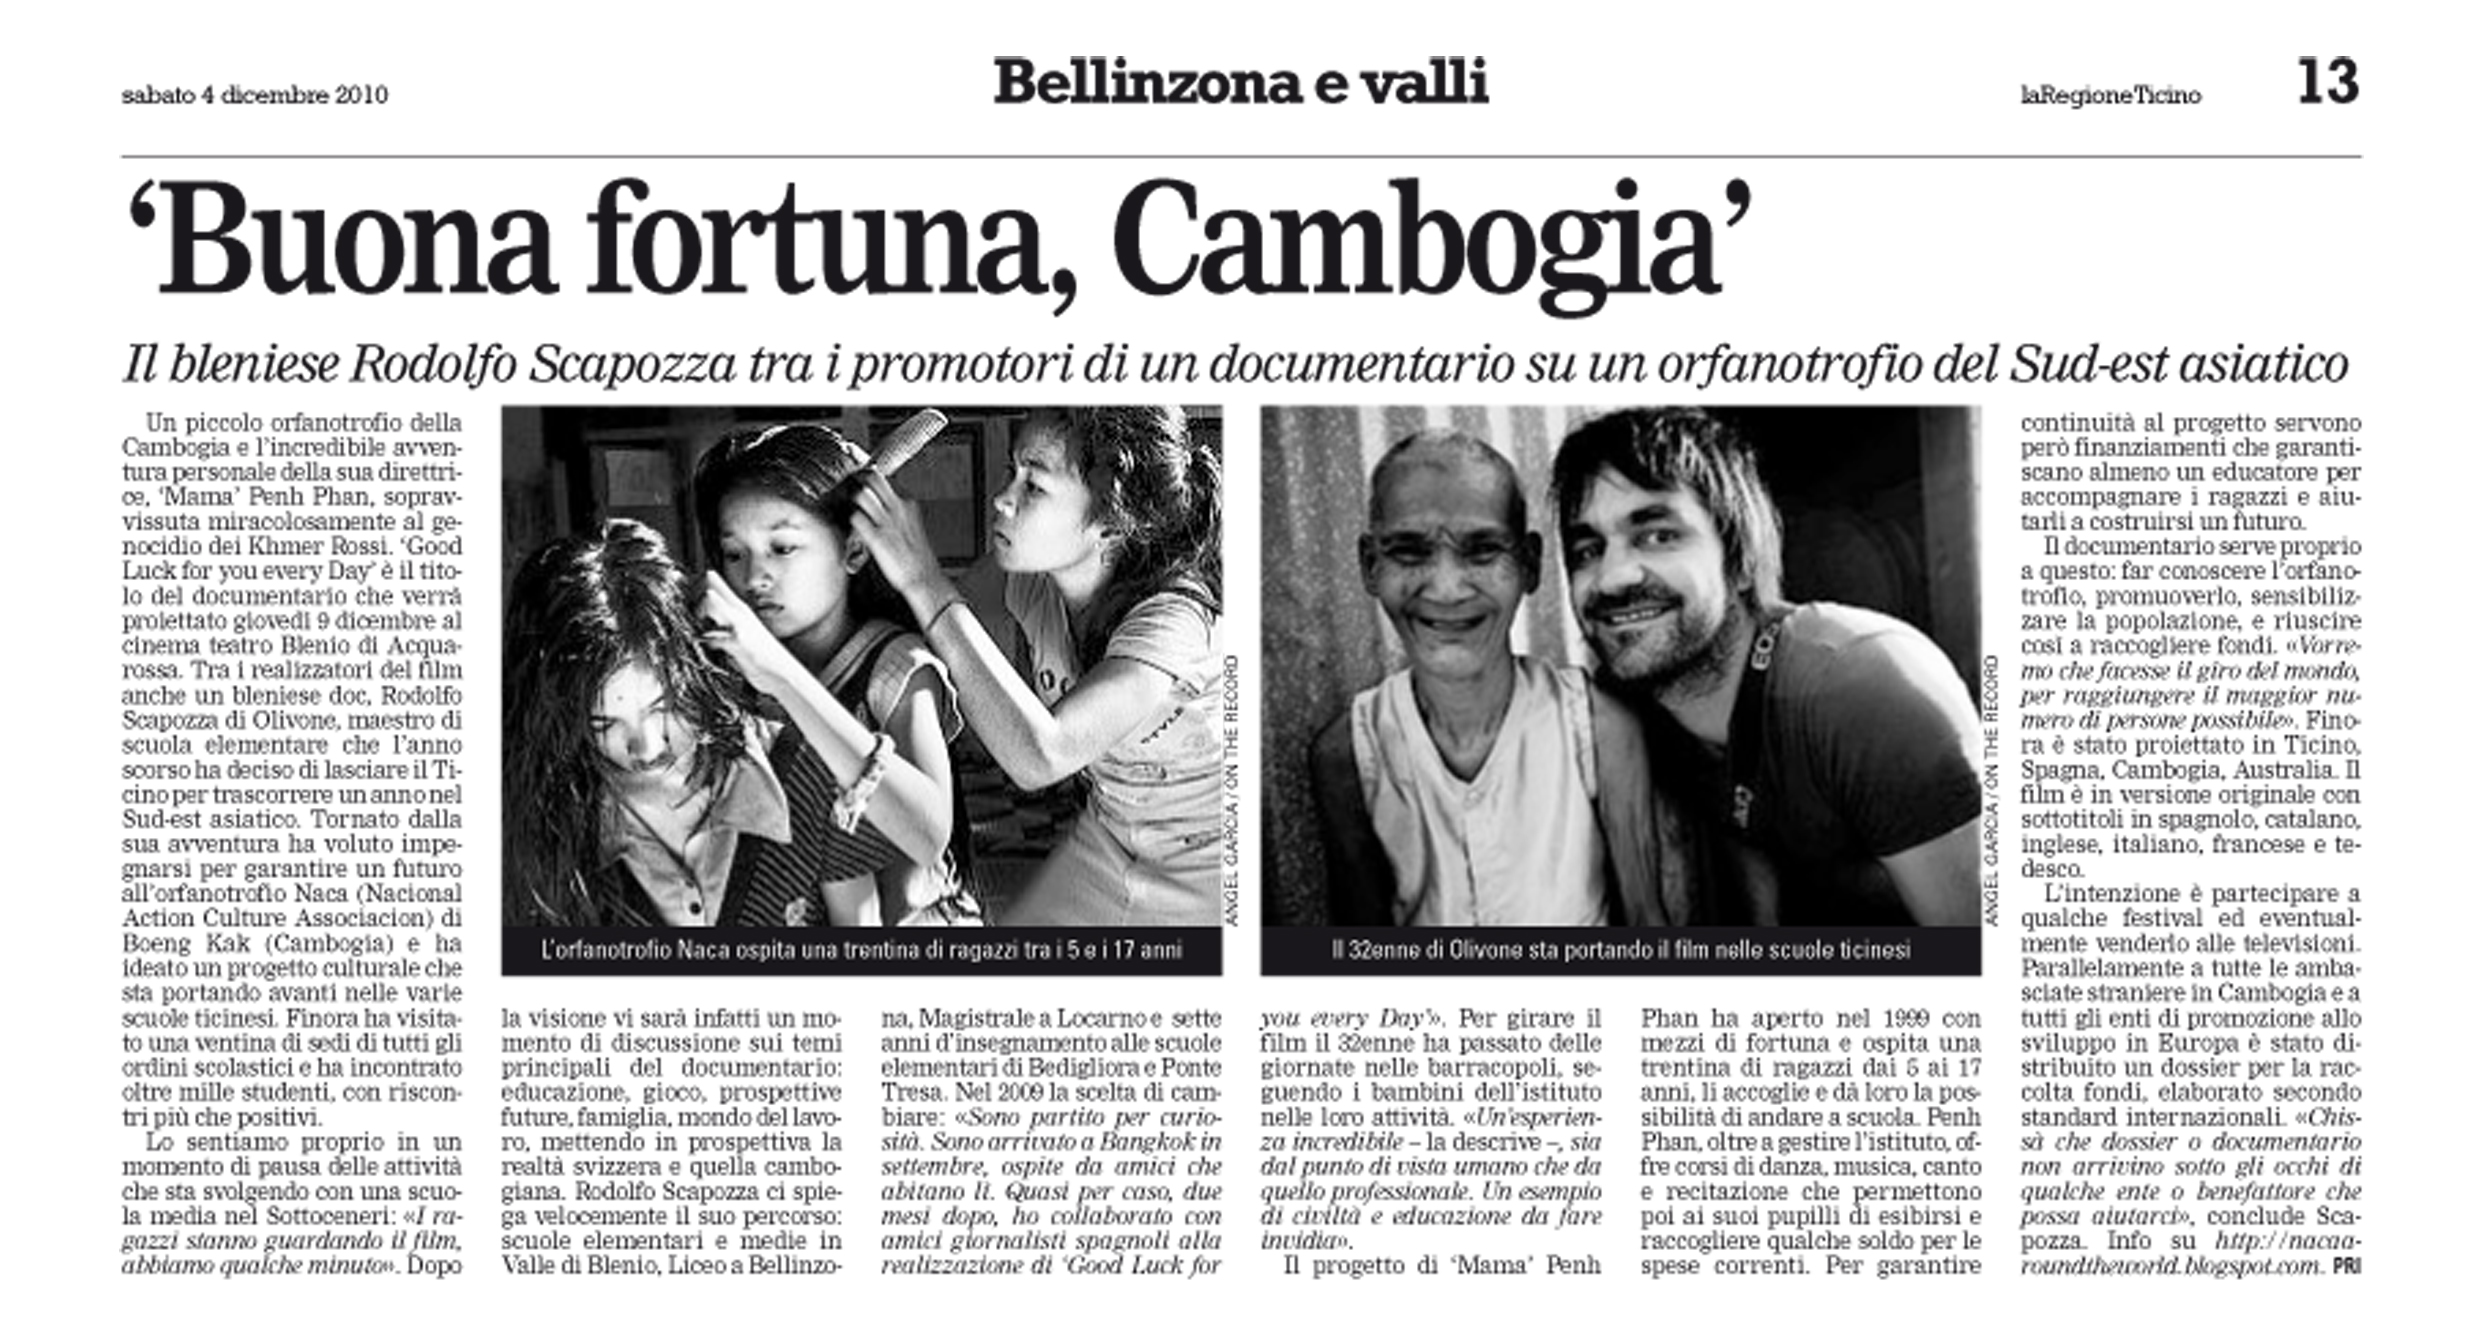 Article 'Buona fortuna, Cambogia'